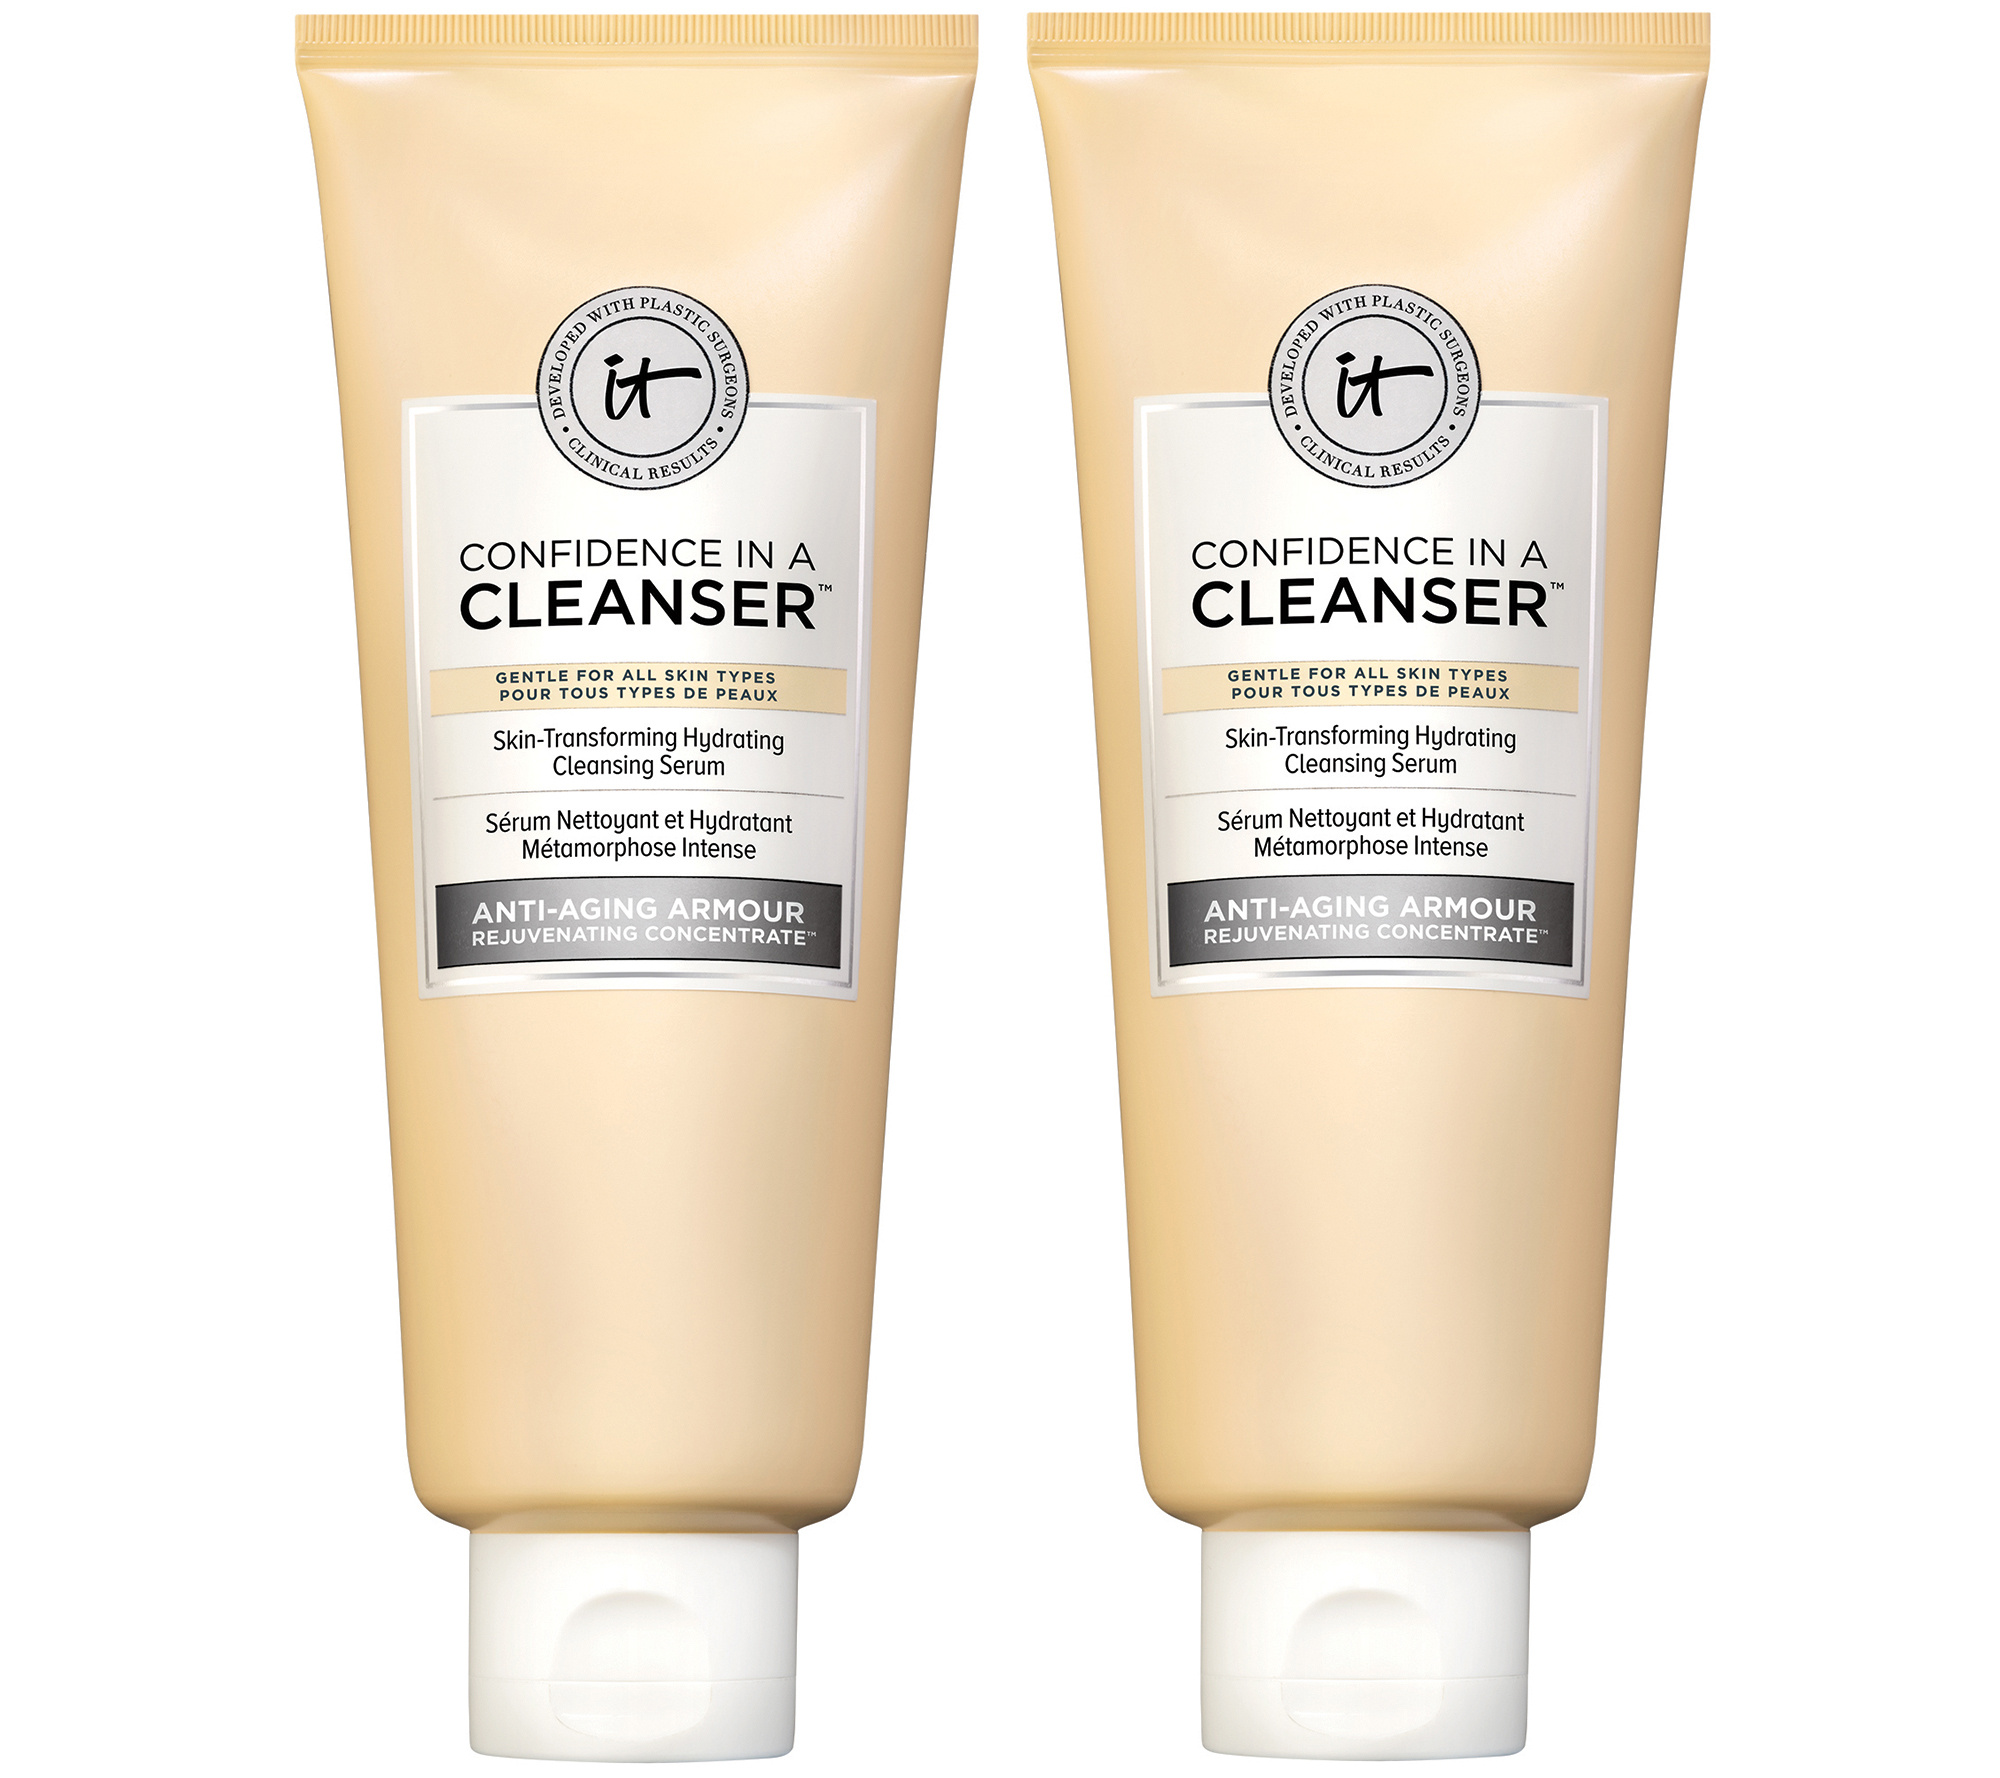 Confidence in a Cleanser Cleansing Serum Duo